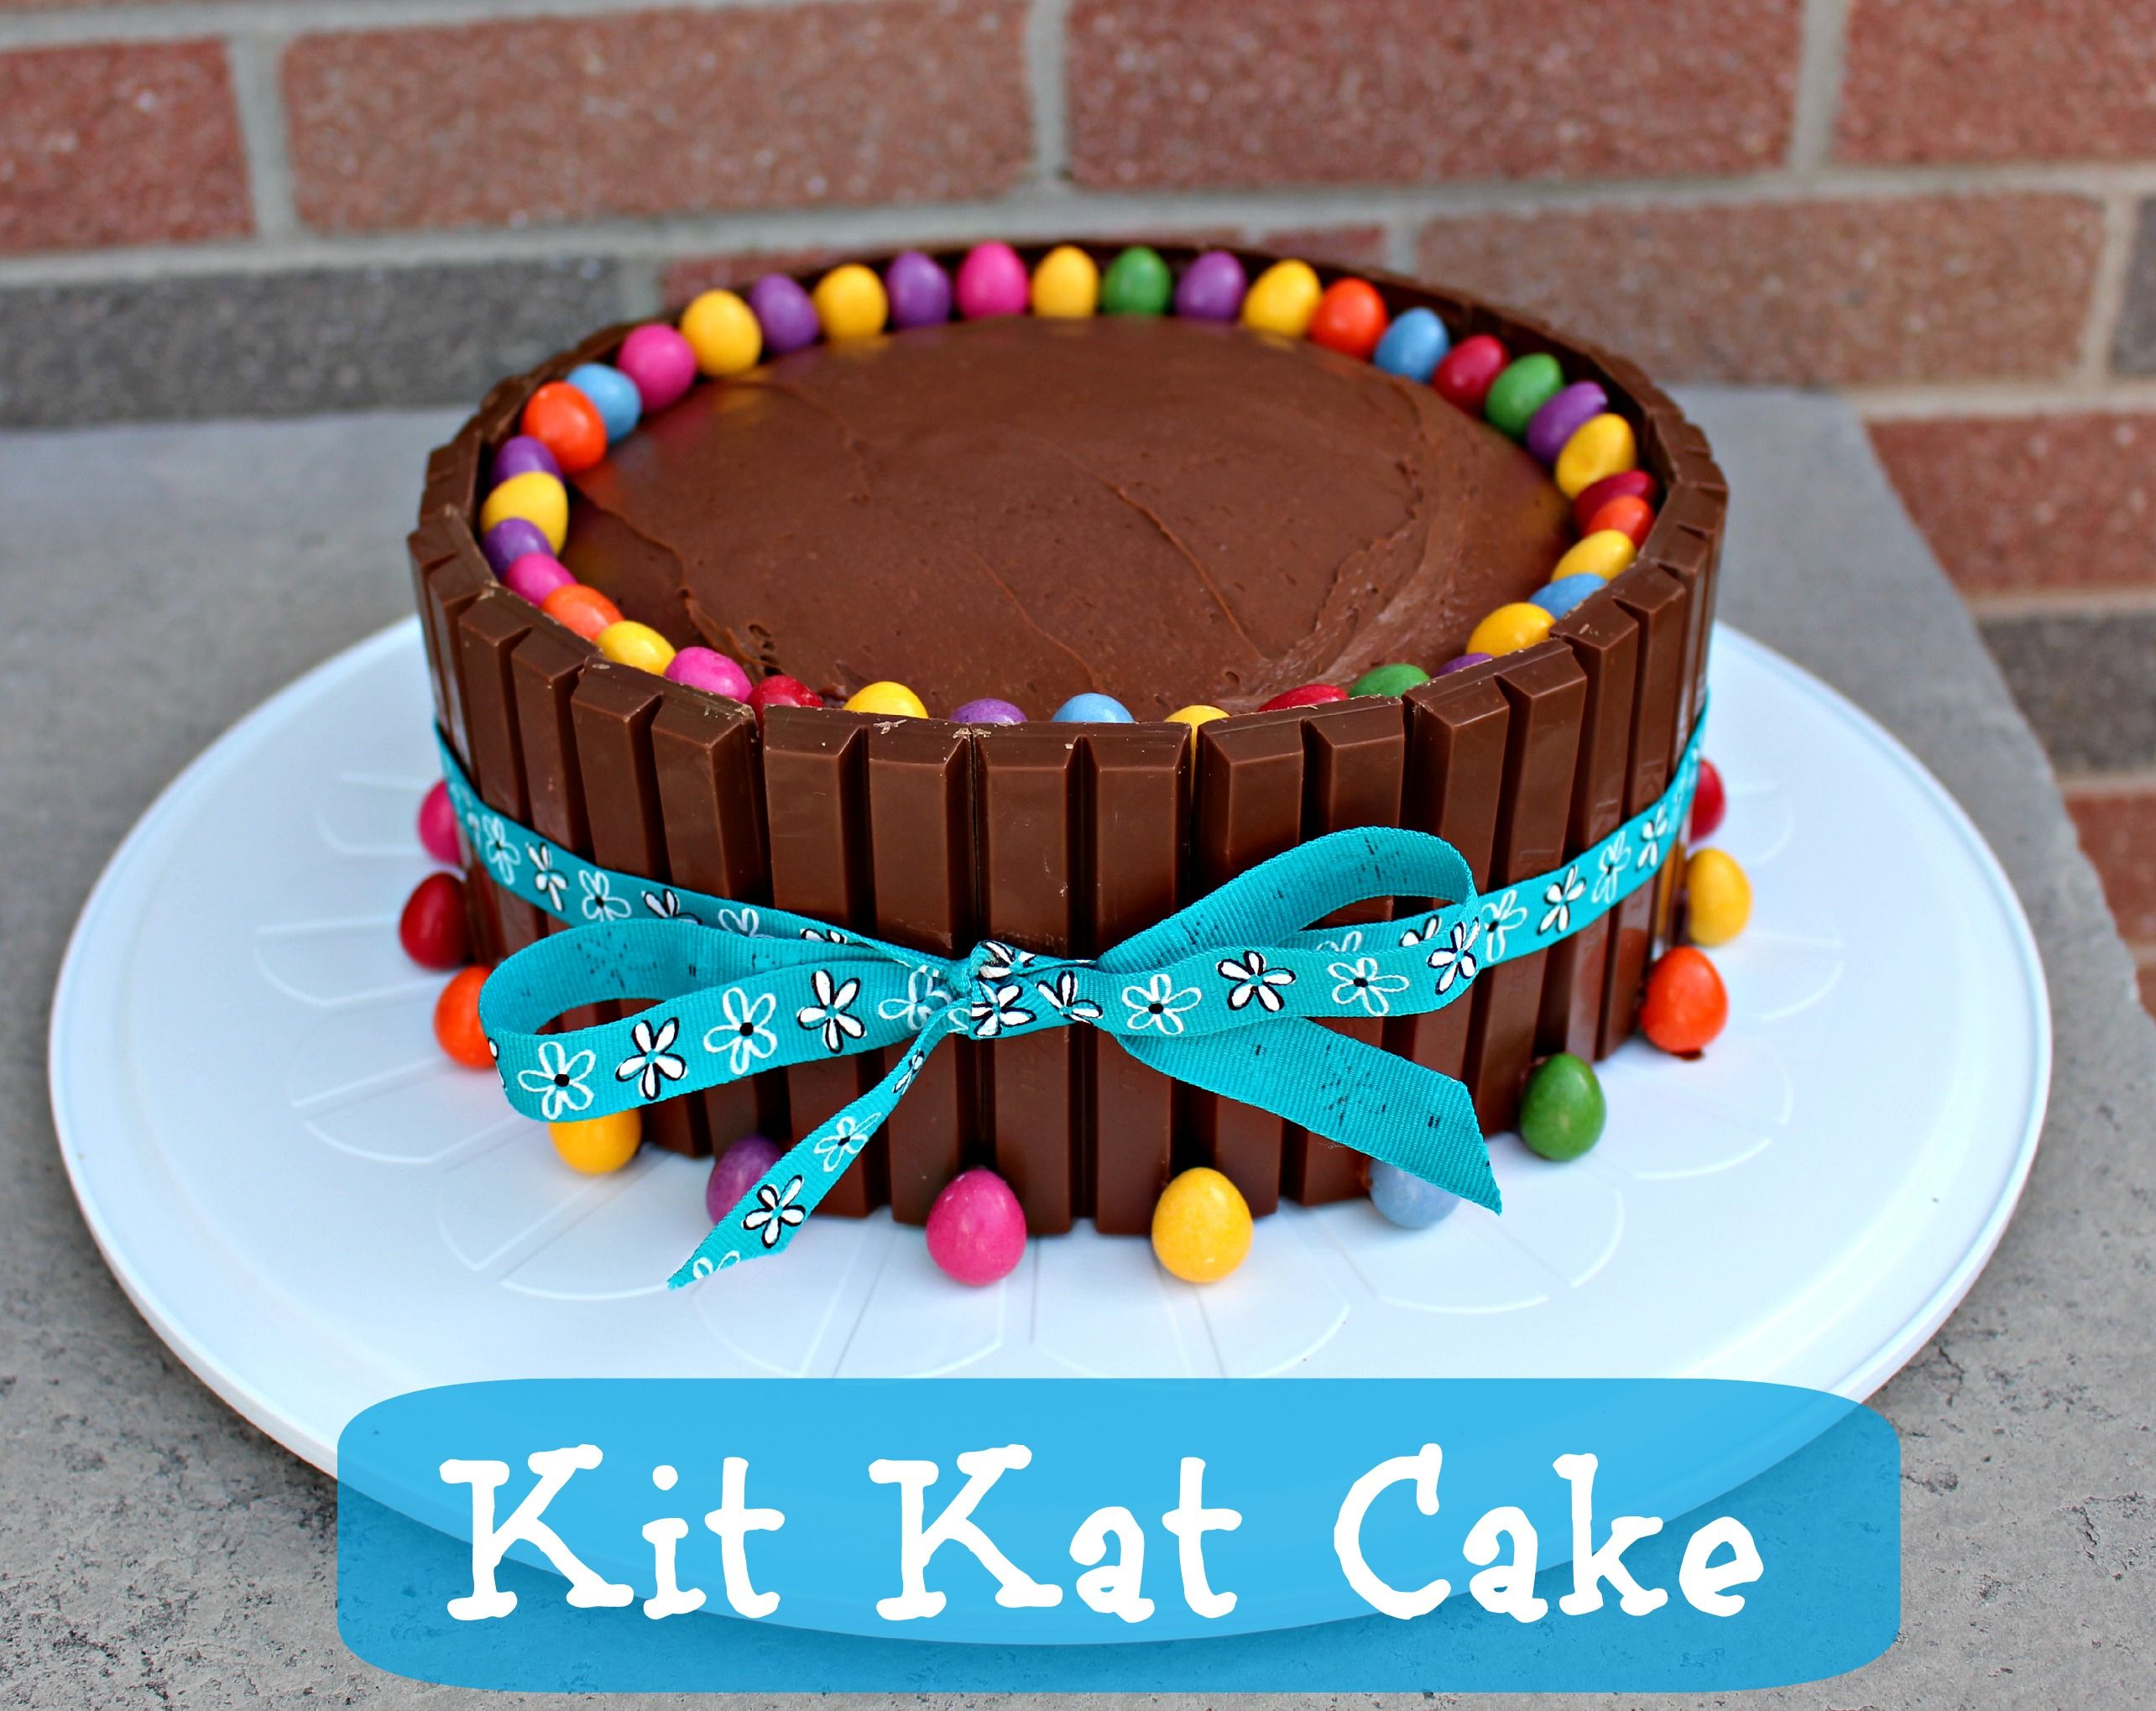 Kitkat Cake Recipe Easy Birthday Cake Idea Recipe Kit Kat Cake Easy Birthday Cake Recipes Birthday Cakes For Teens